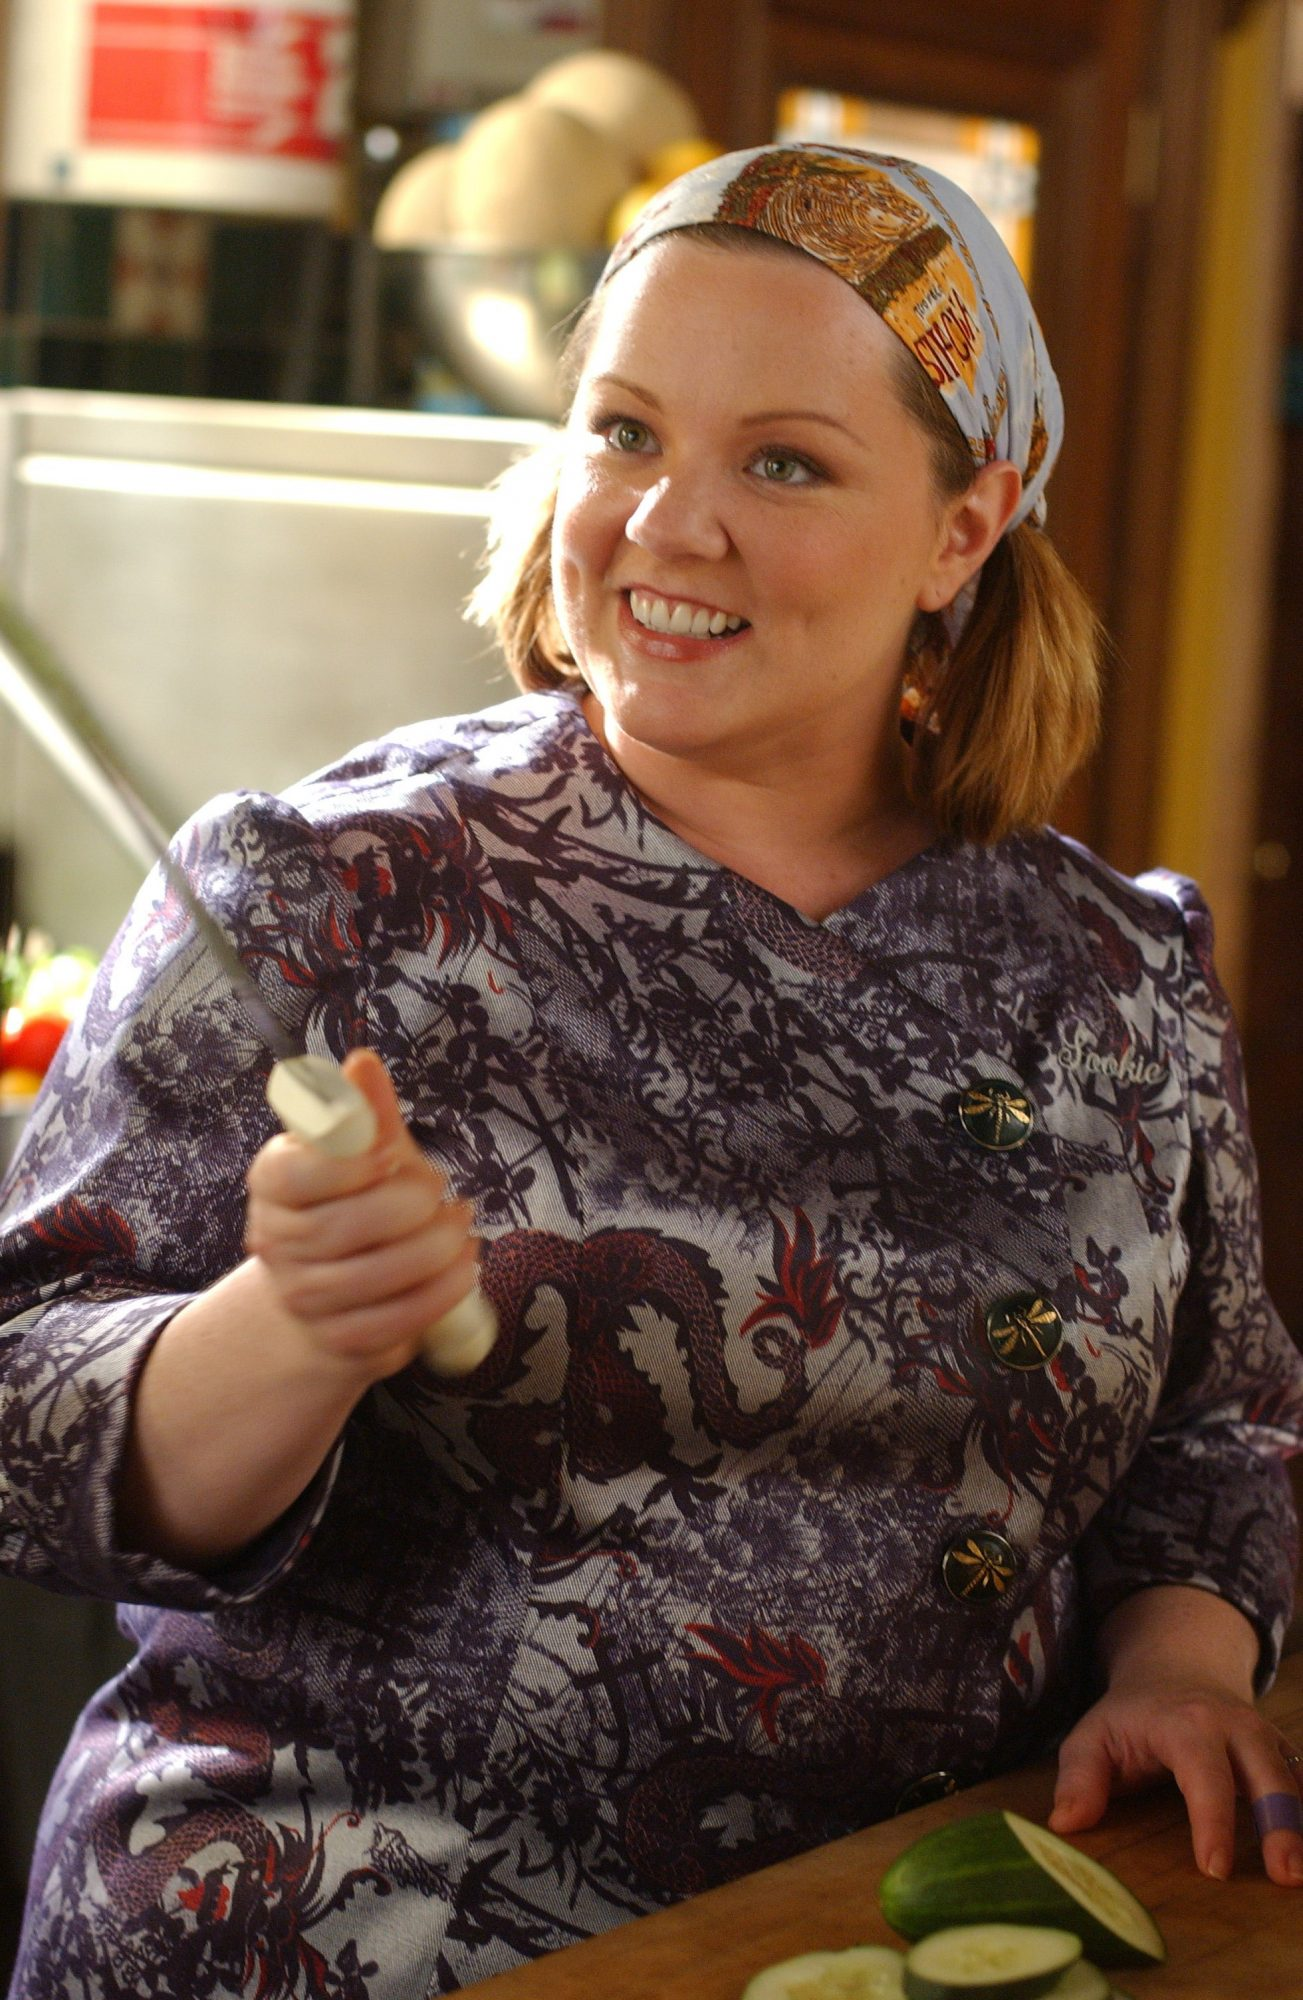 cooking-lessons-sookie-gilmore-girls